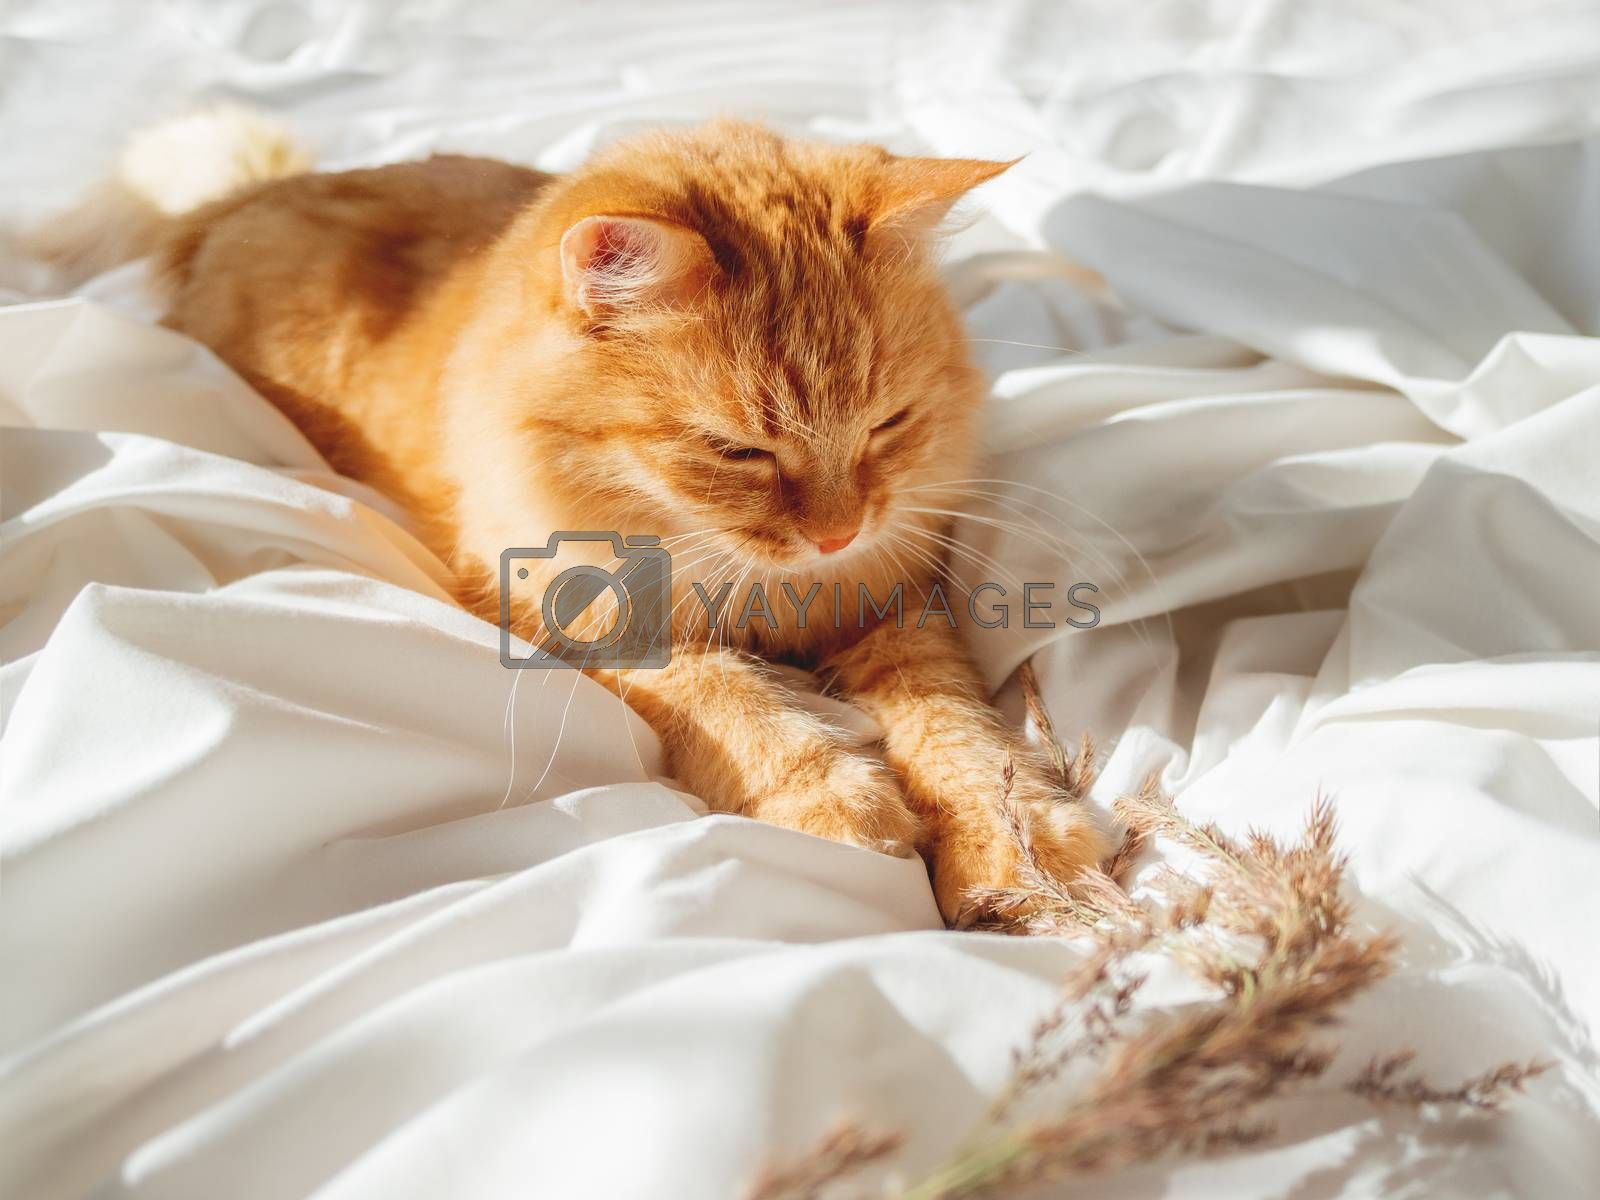 Cute ginger cat plays with dried grass on crumpled bed. Morning bedtime with playful pet. Fluffy domestic animal on white bed sheet. Cozy home.